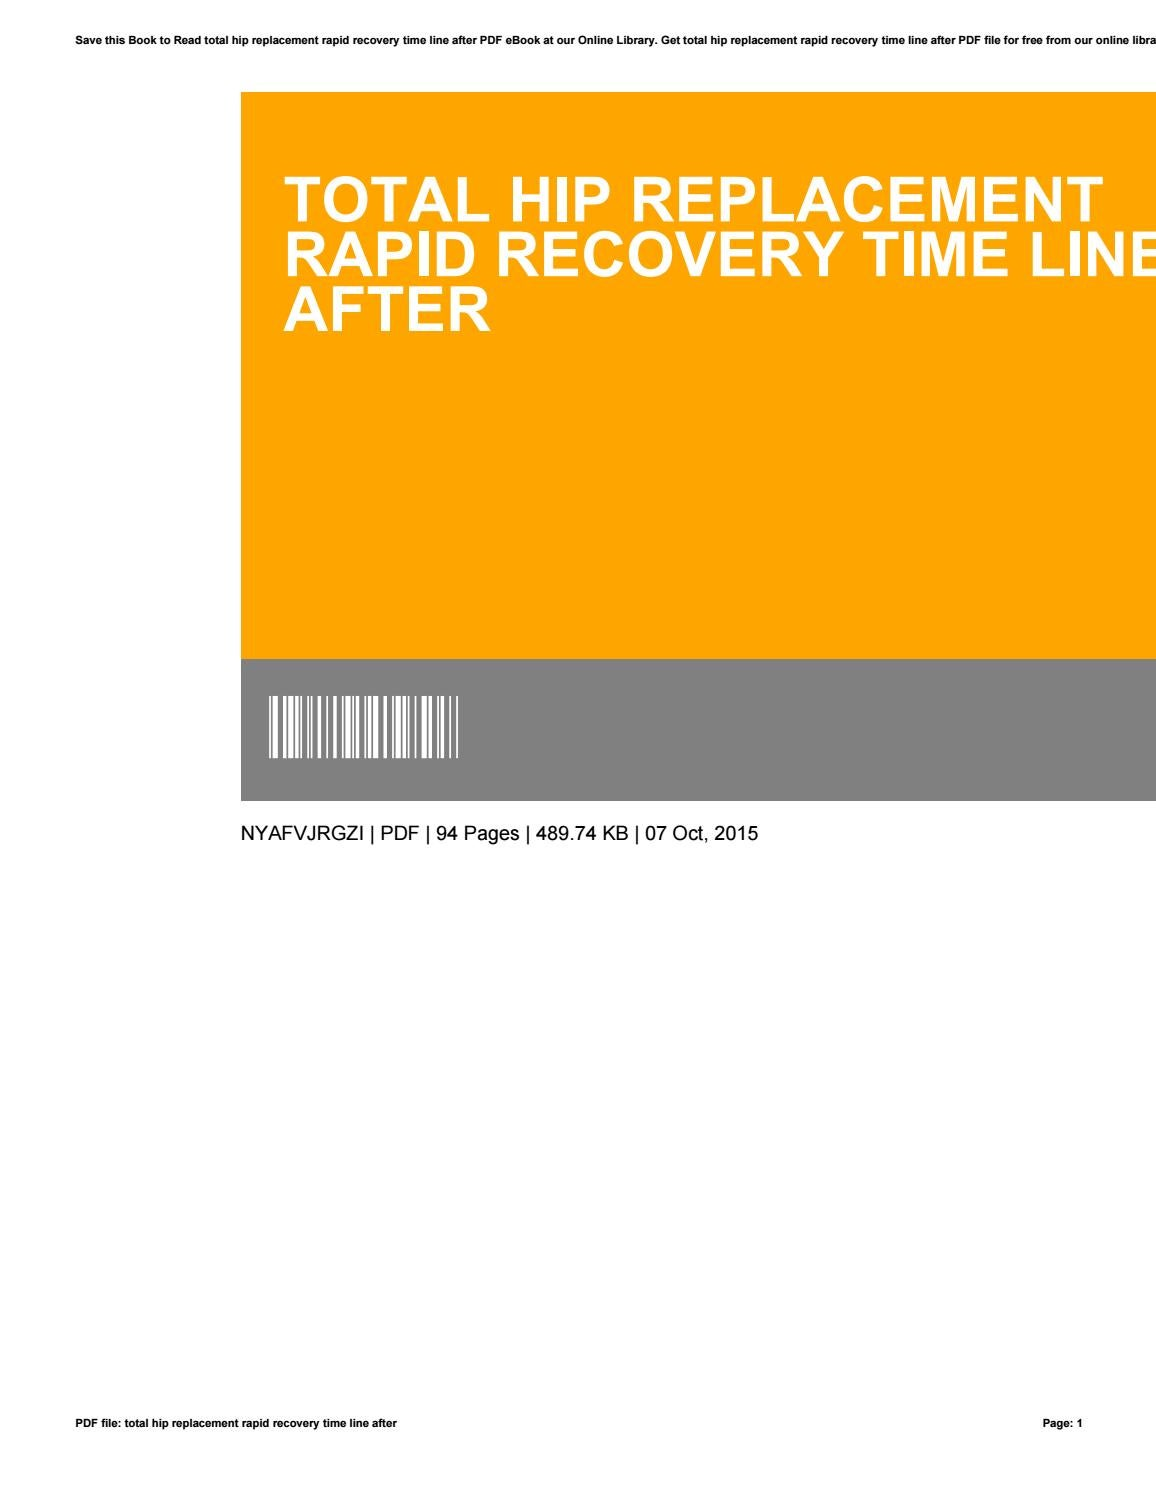 Total hip replacement rapid recovery time line after by ...